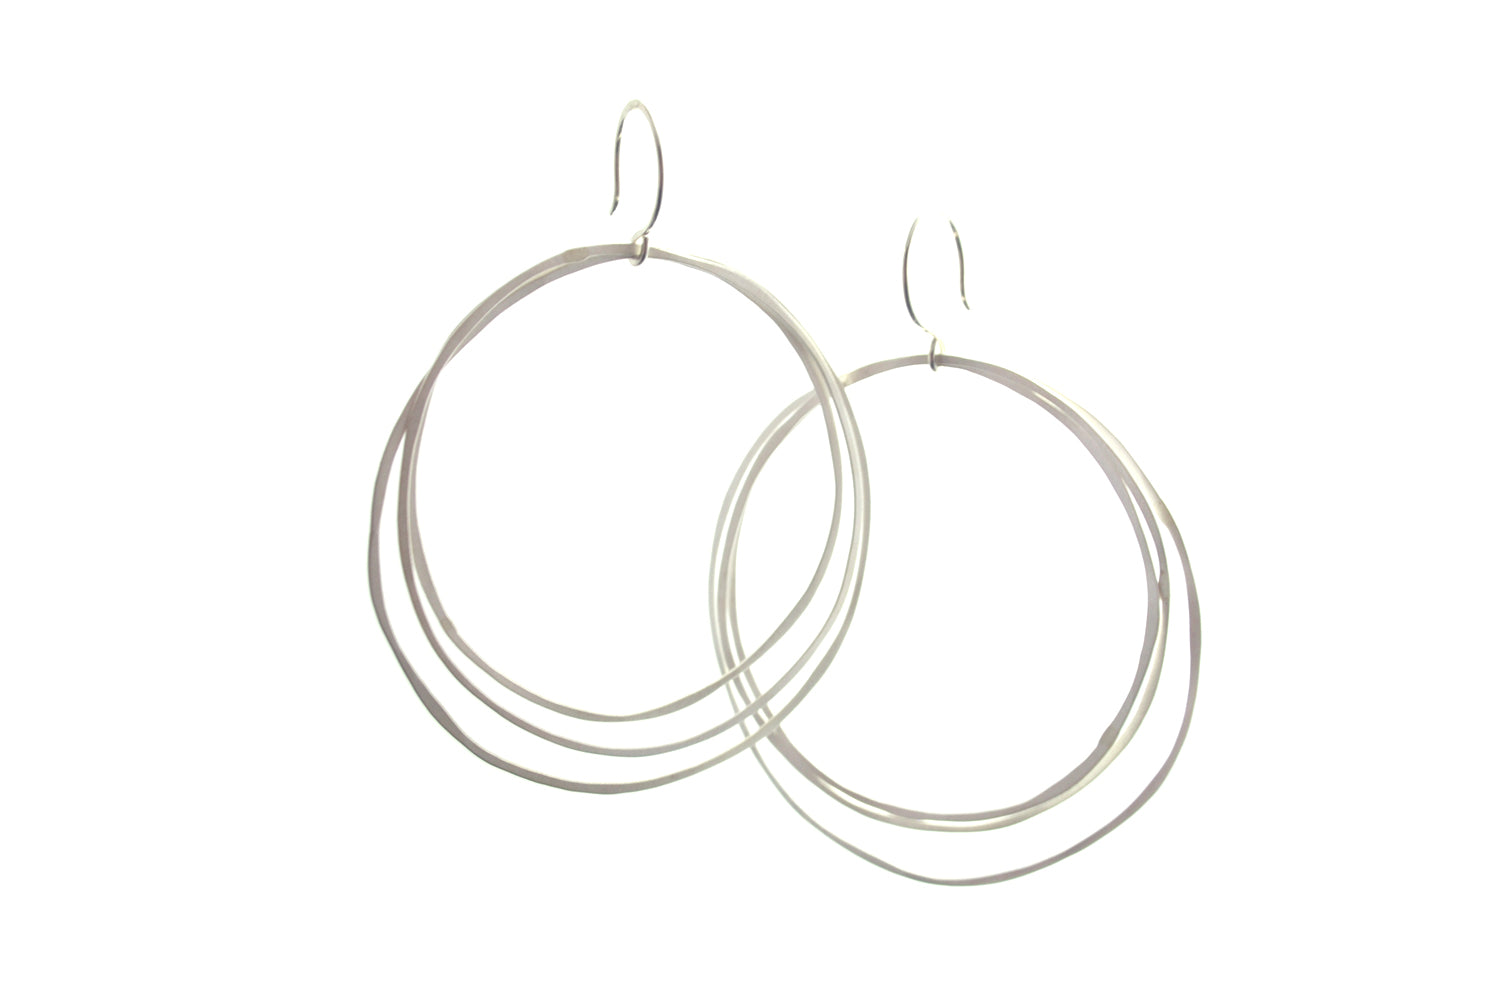 Tripple Hoop Earrings | Olivia de Soria